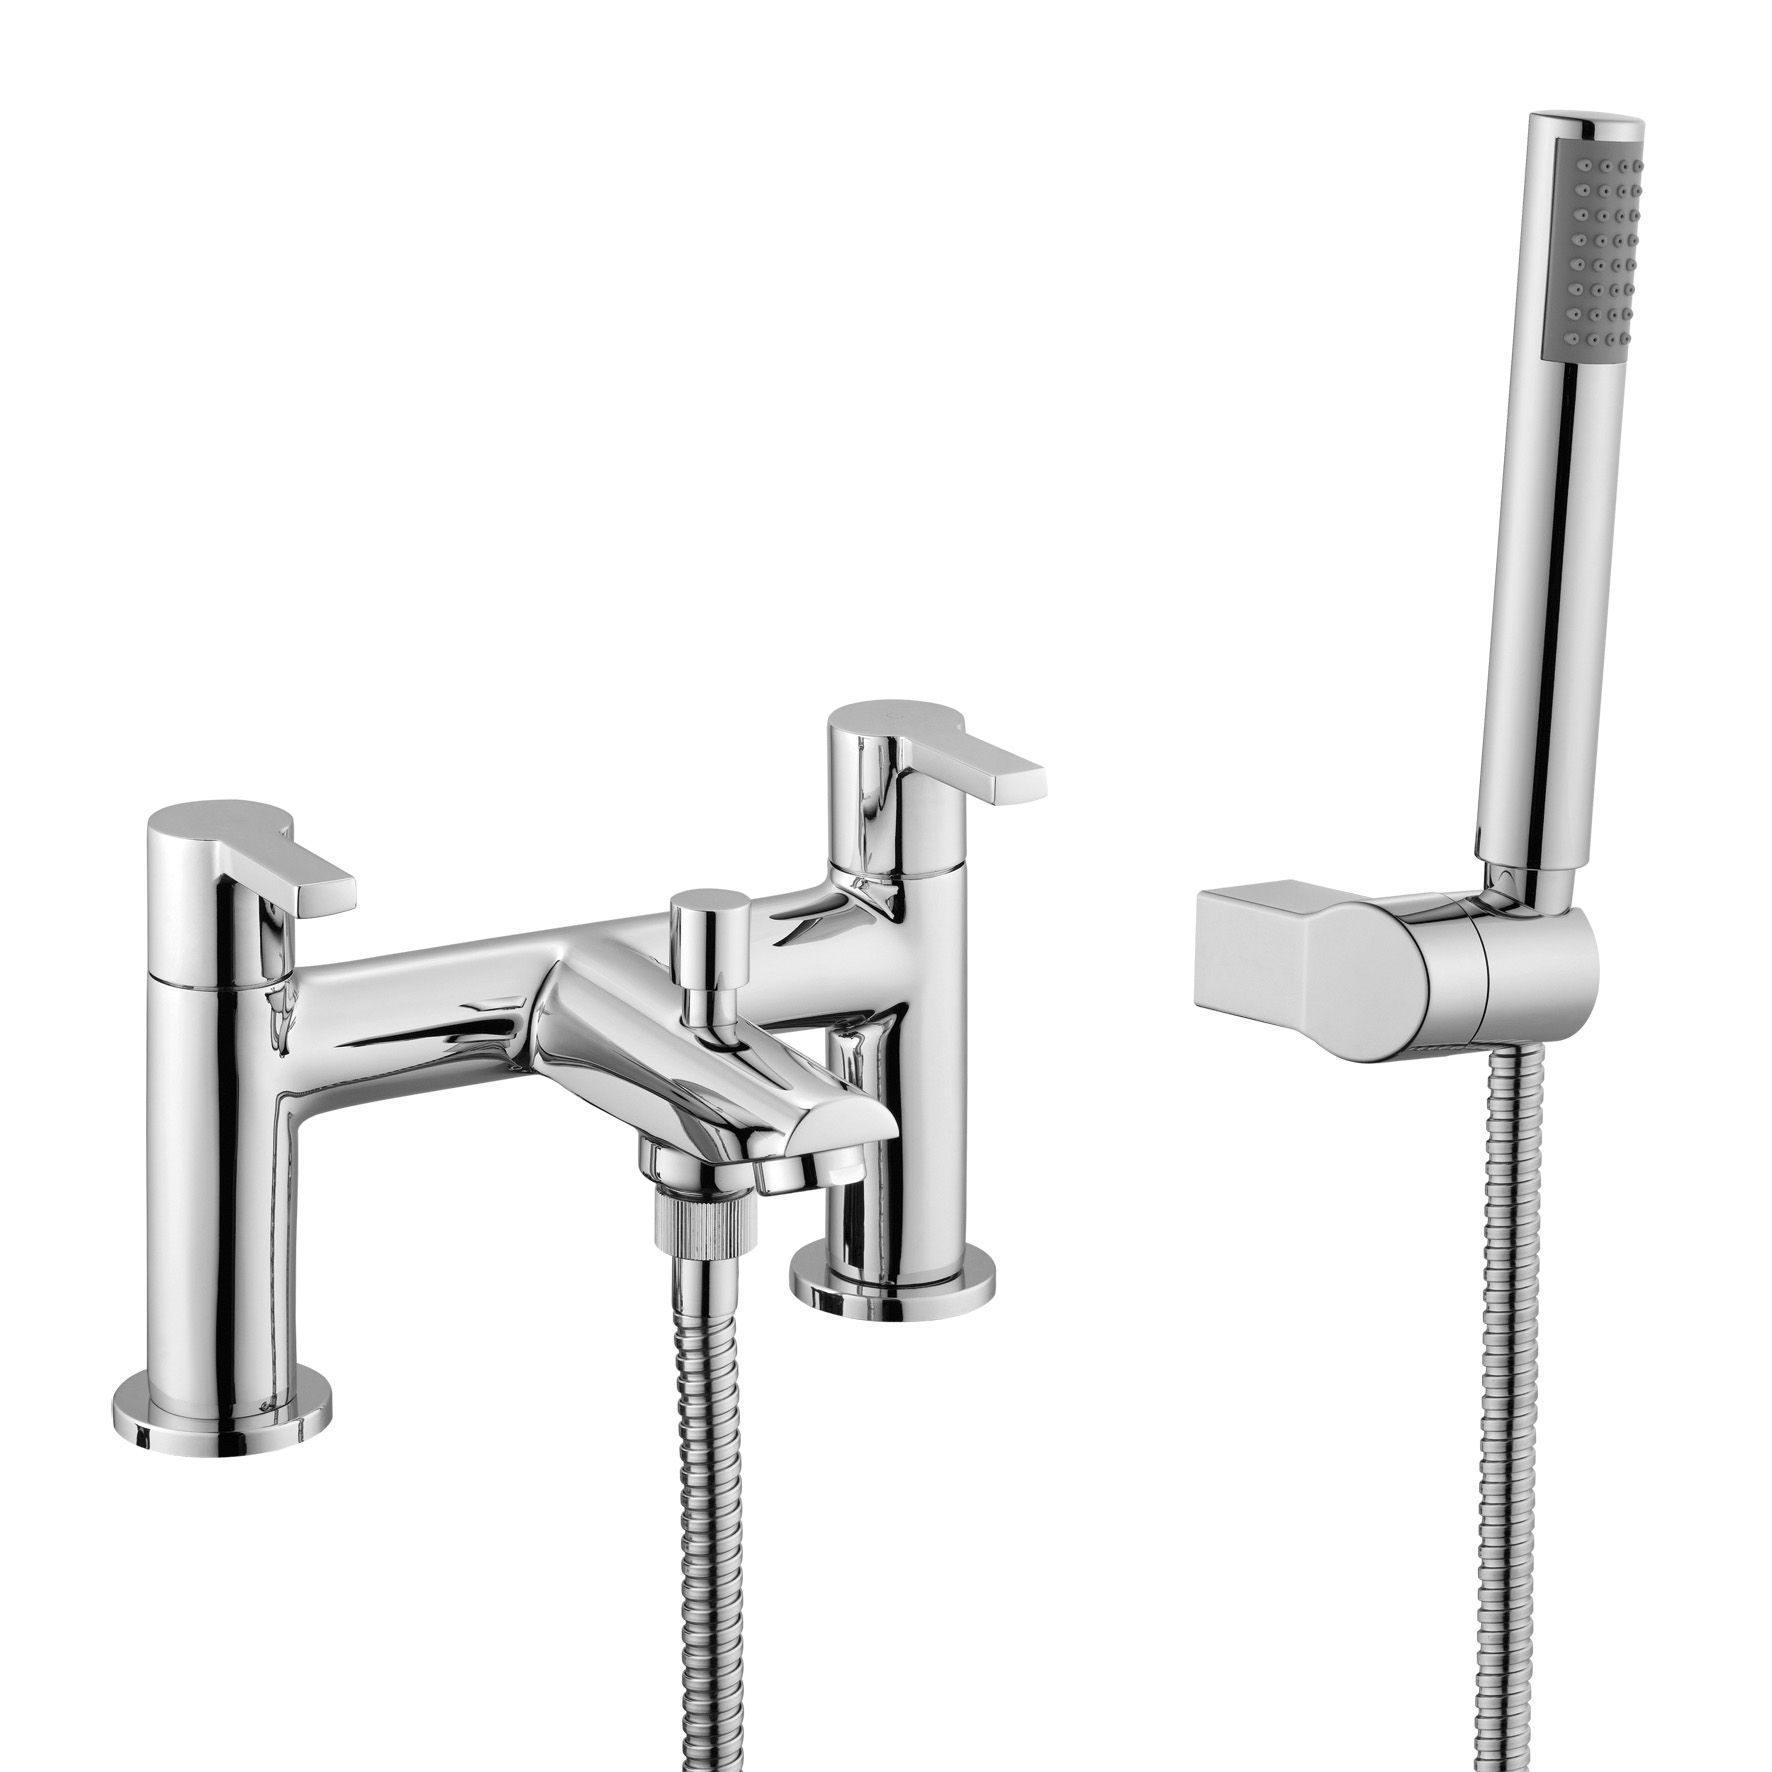 Cooke Lewis Purity Chrome Bath Shower Mixer Tap